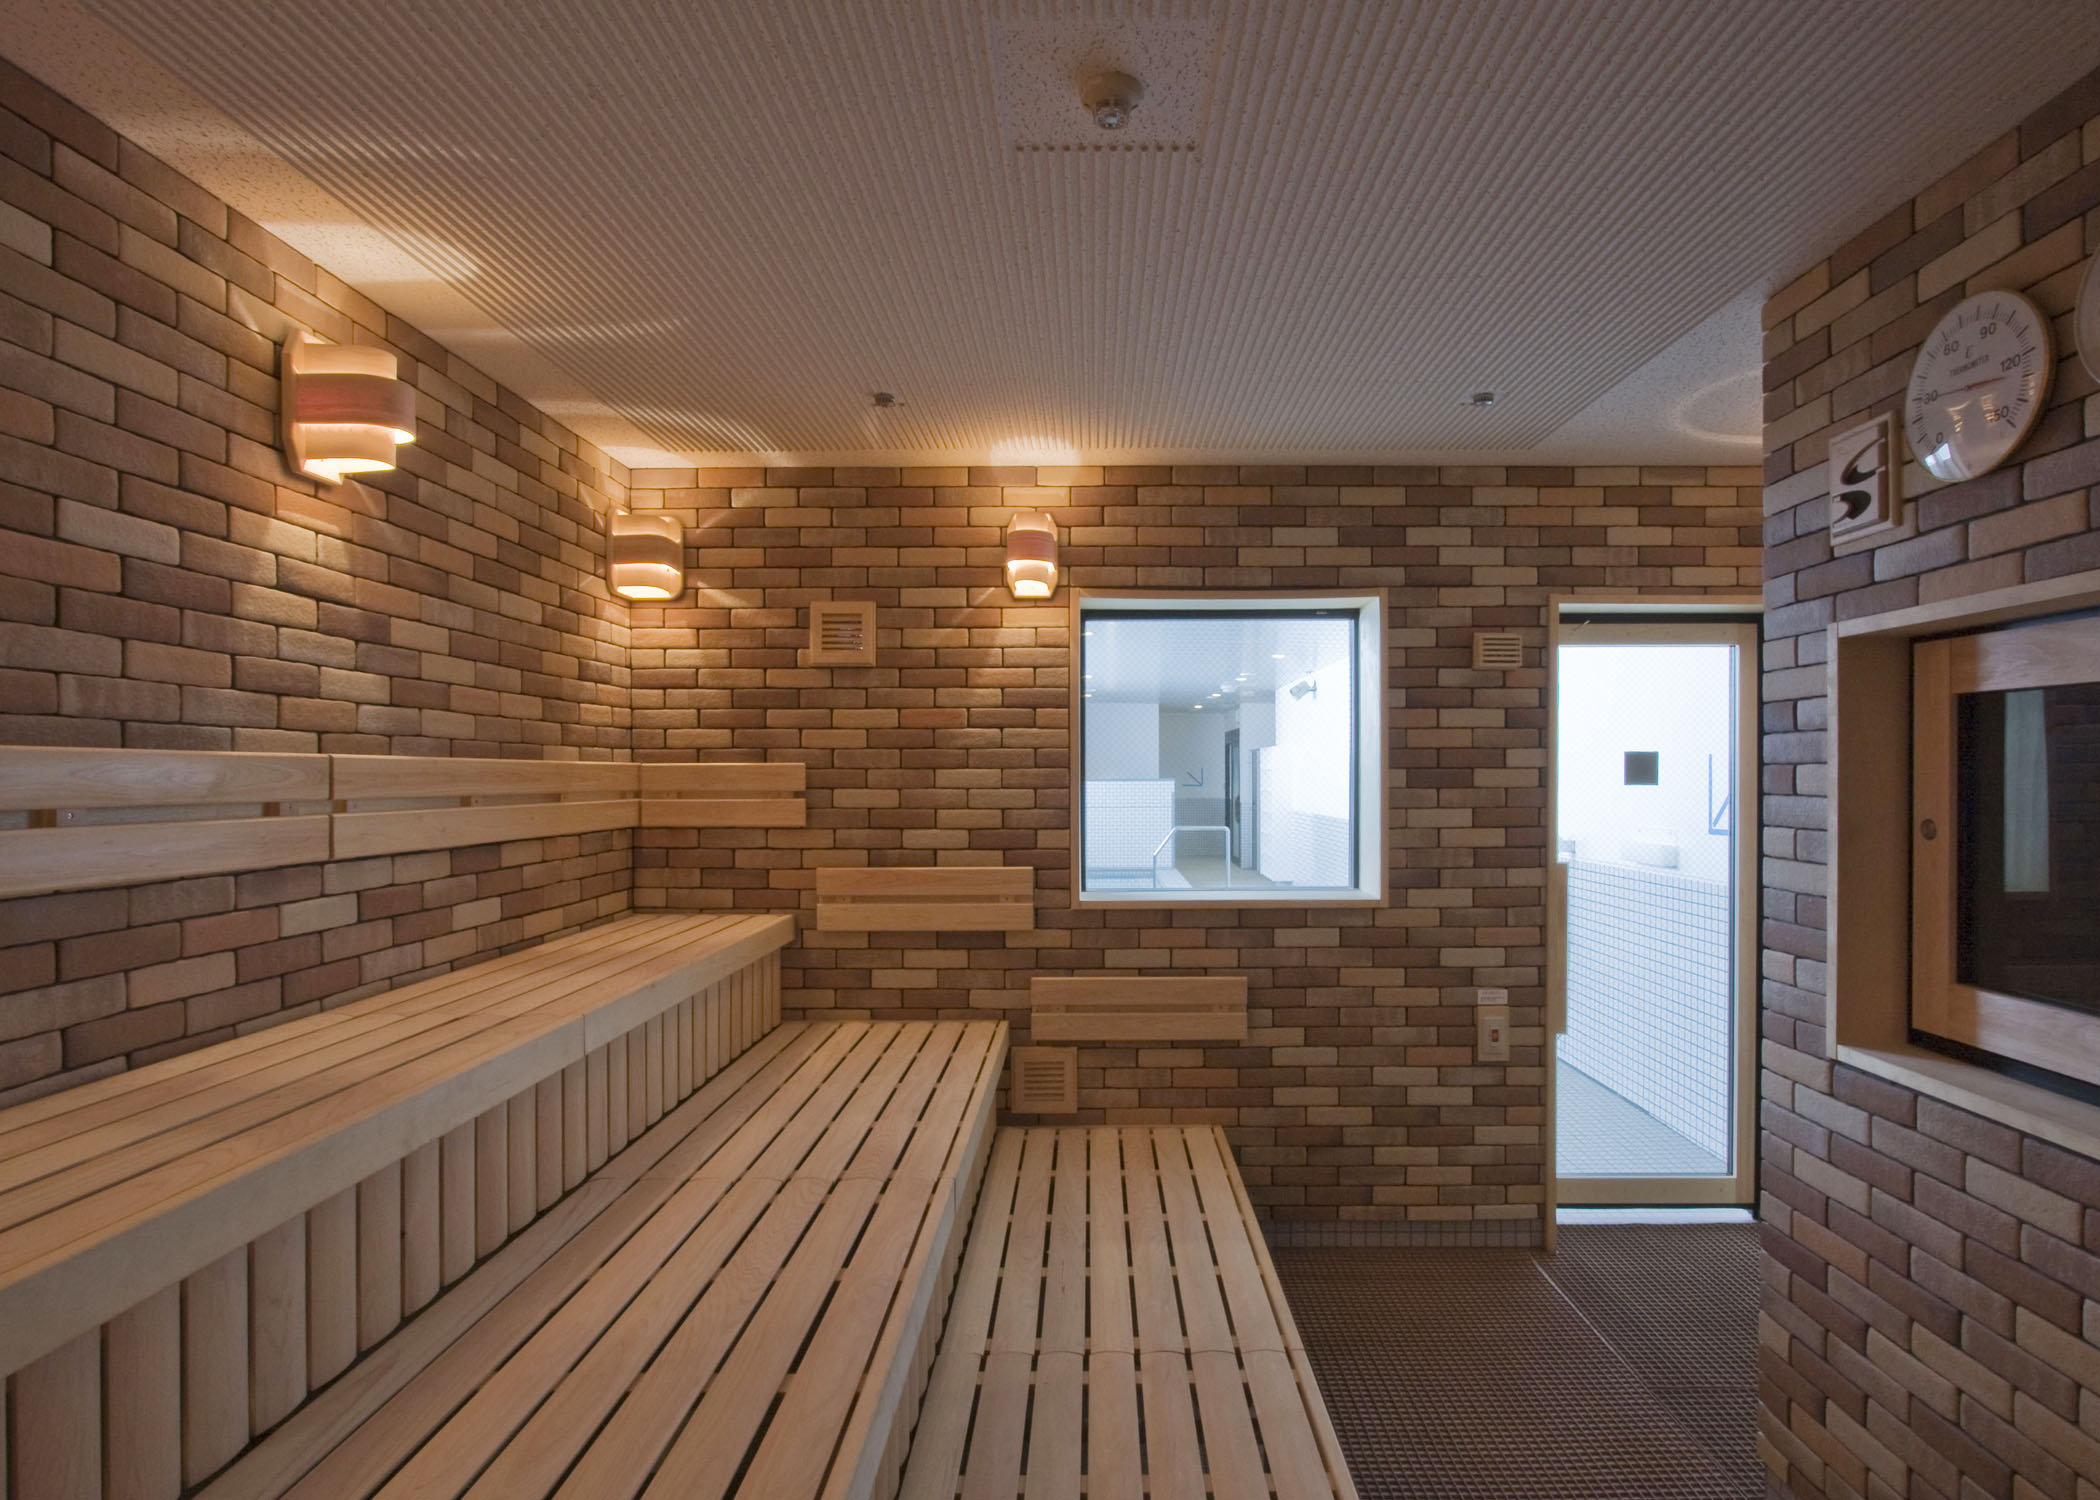 Brick sauna room